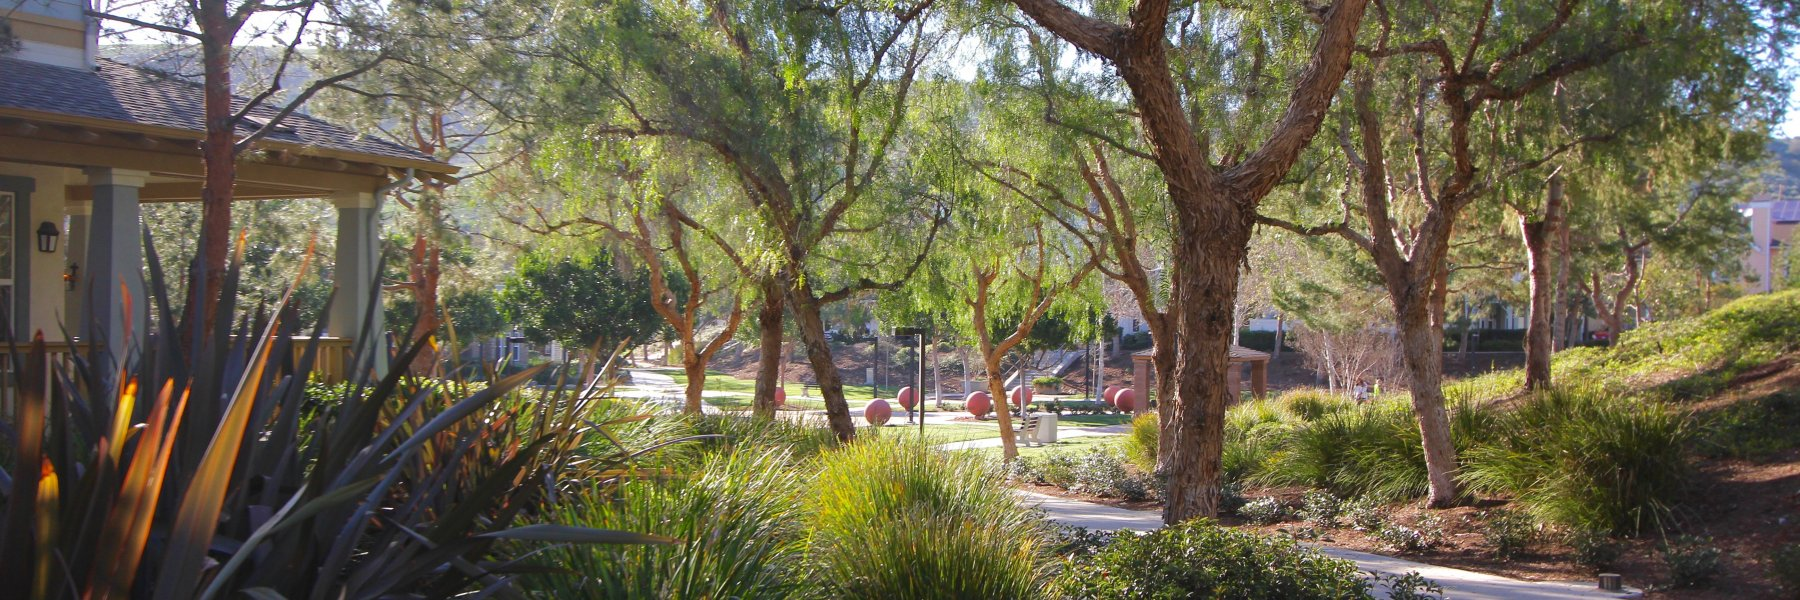 Briar Rose is a community of homes in Ladera Ranch California